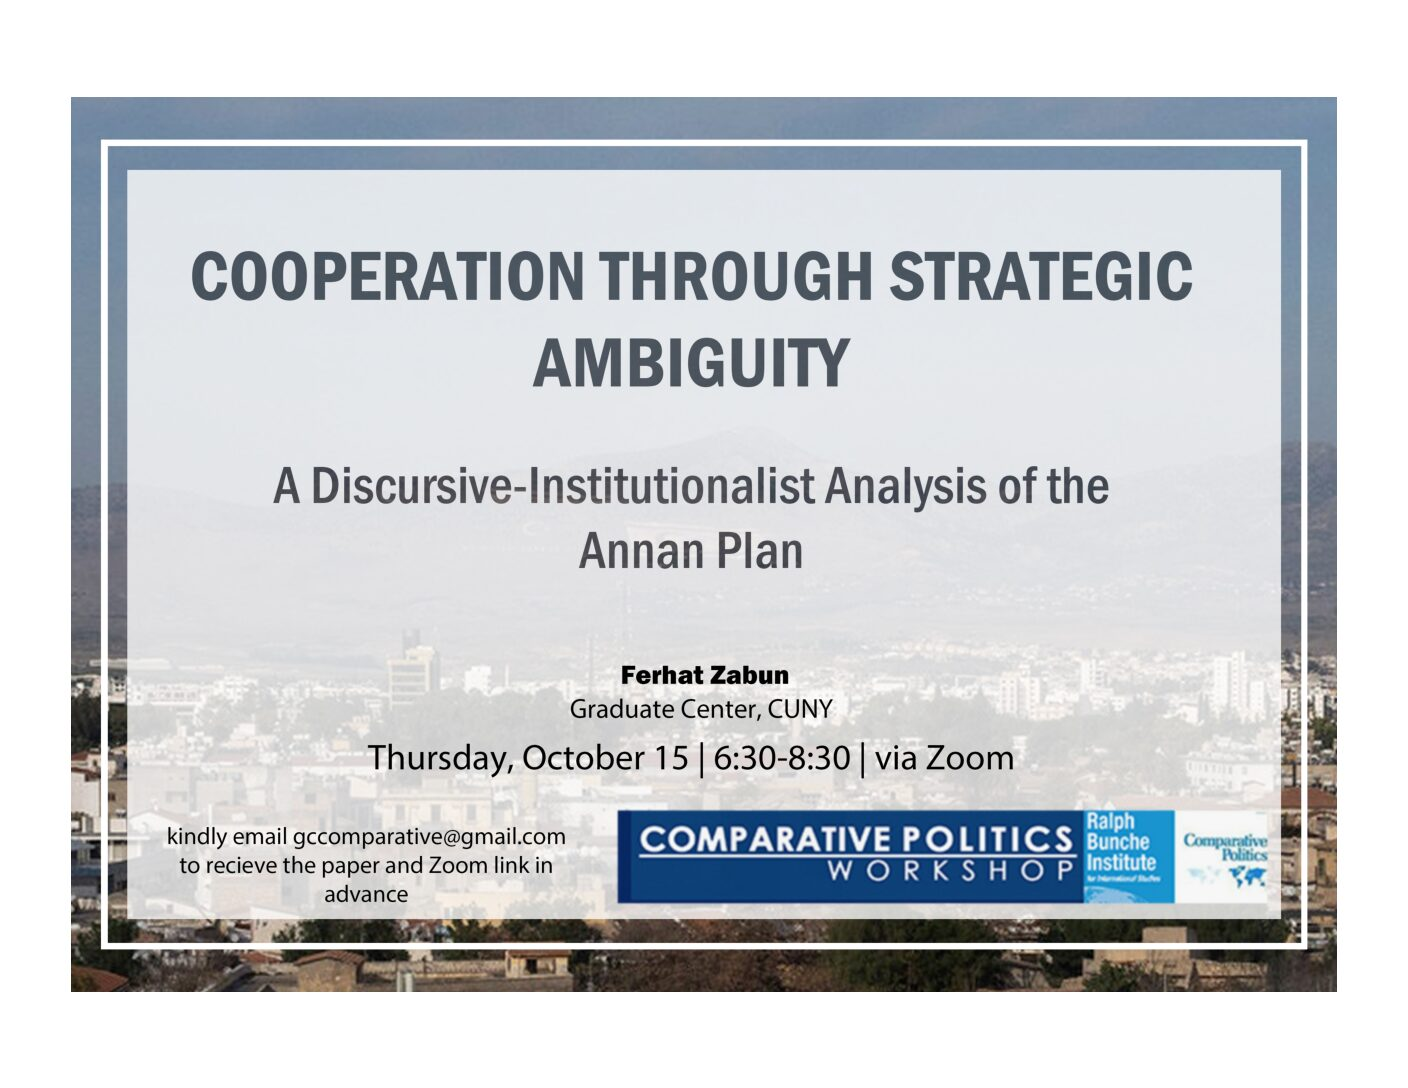 """CPW: Ferhat Zabun, """"Cooperation through Strategic Ambiguity: A Discursive-Institutionalist Analysis of the Annan Plan"""" Thursday, October 15, 6:30PM"""